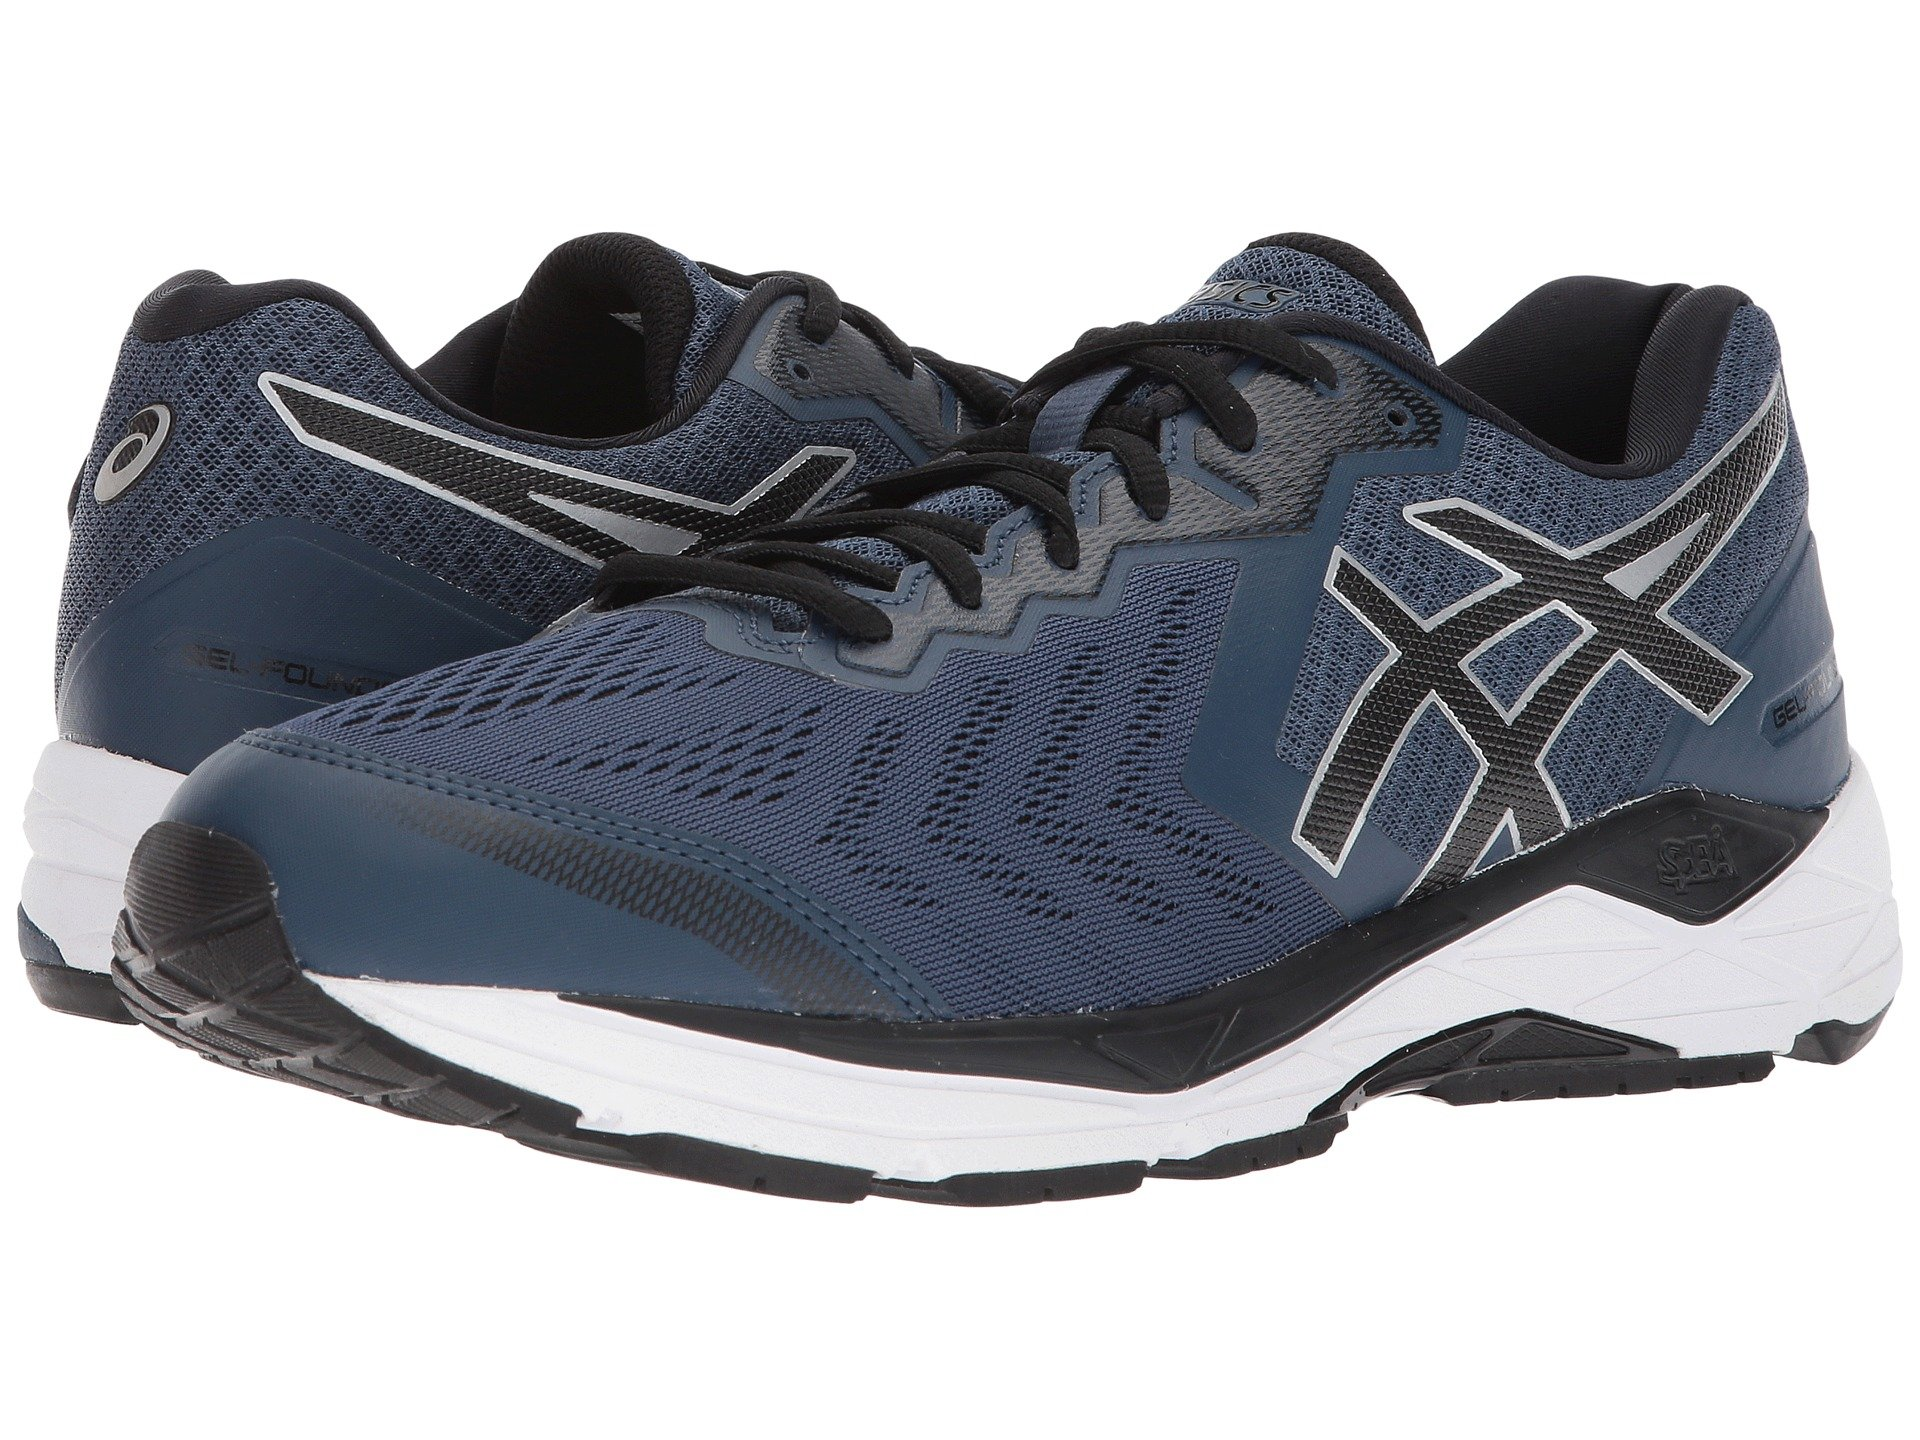 d7715814b4c8 Men s ASICS Sneakers   Athletic Shoes + FREE SHIPPING